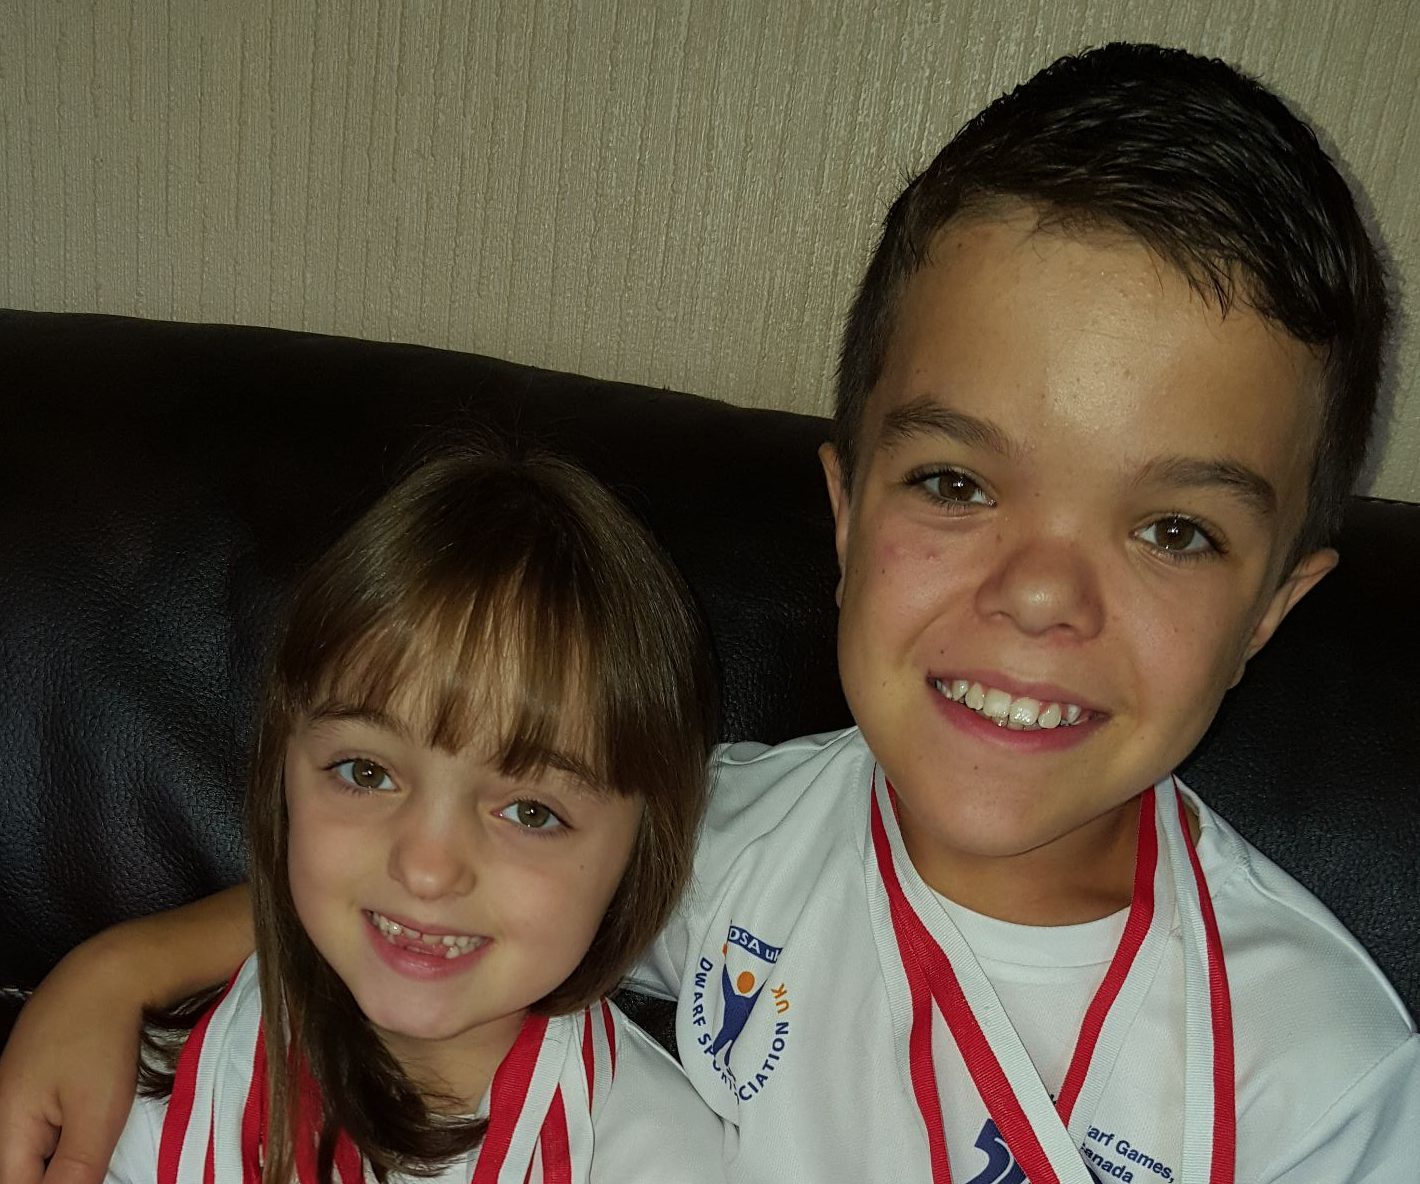 Skye and Finlay Davidson from Inverkeithing have returned with a clutch of medals from the 7th World Dwarf Games